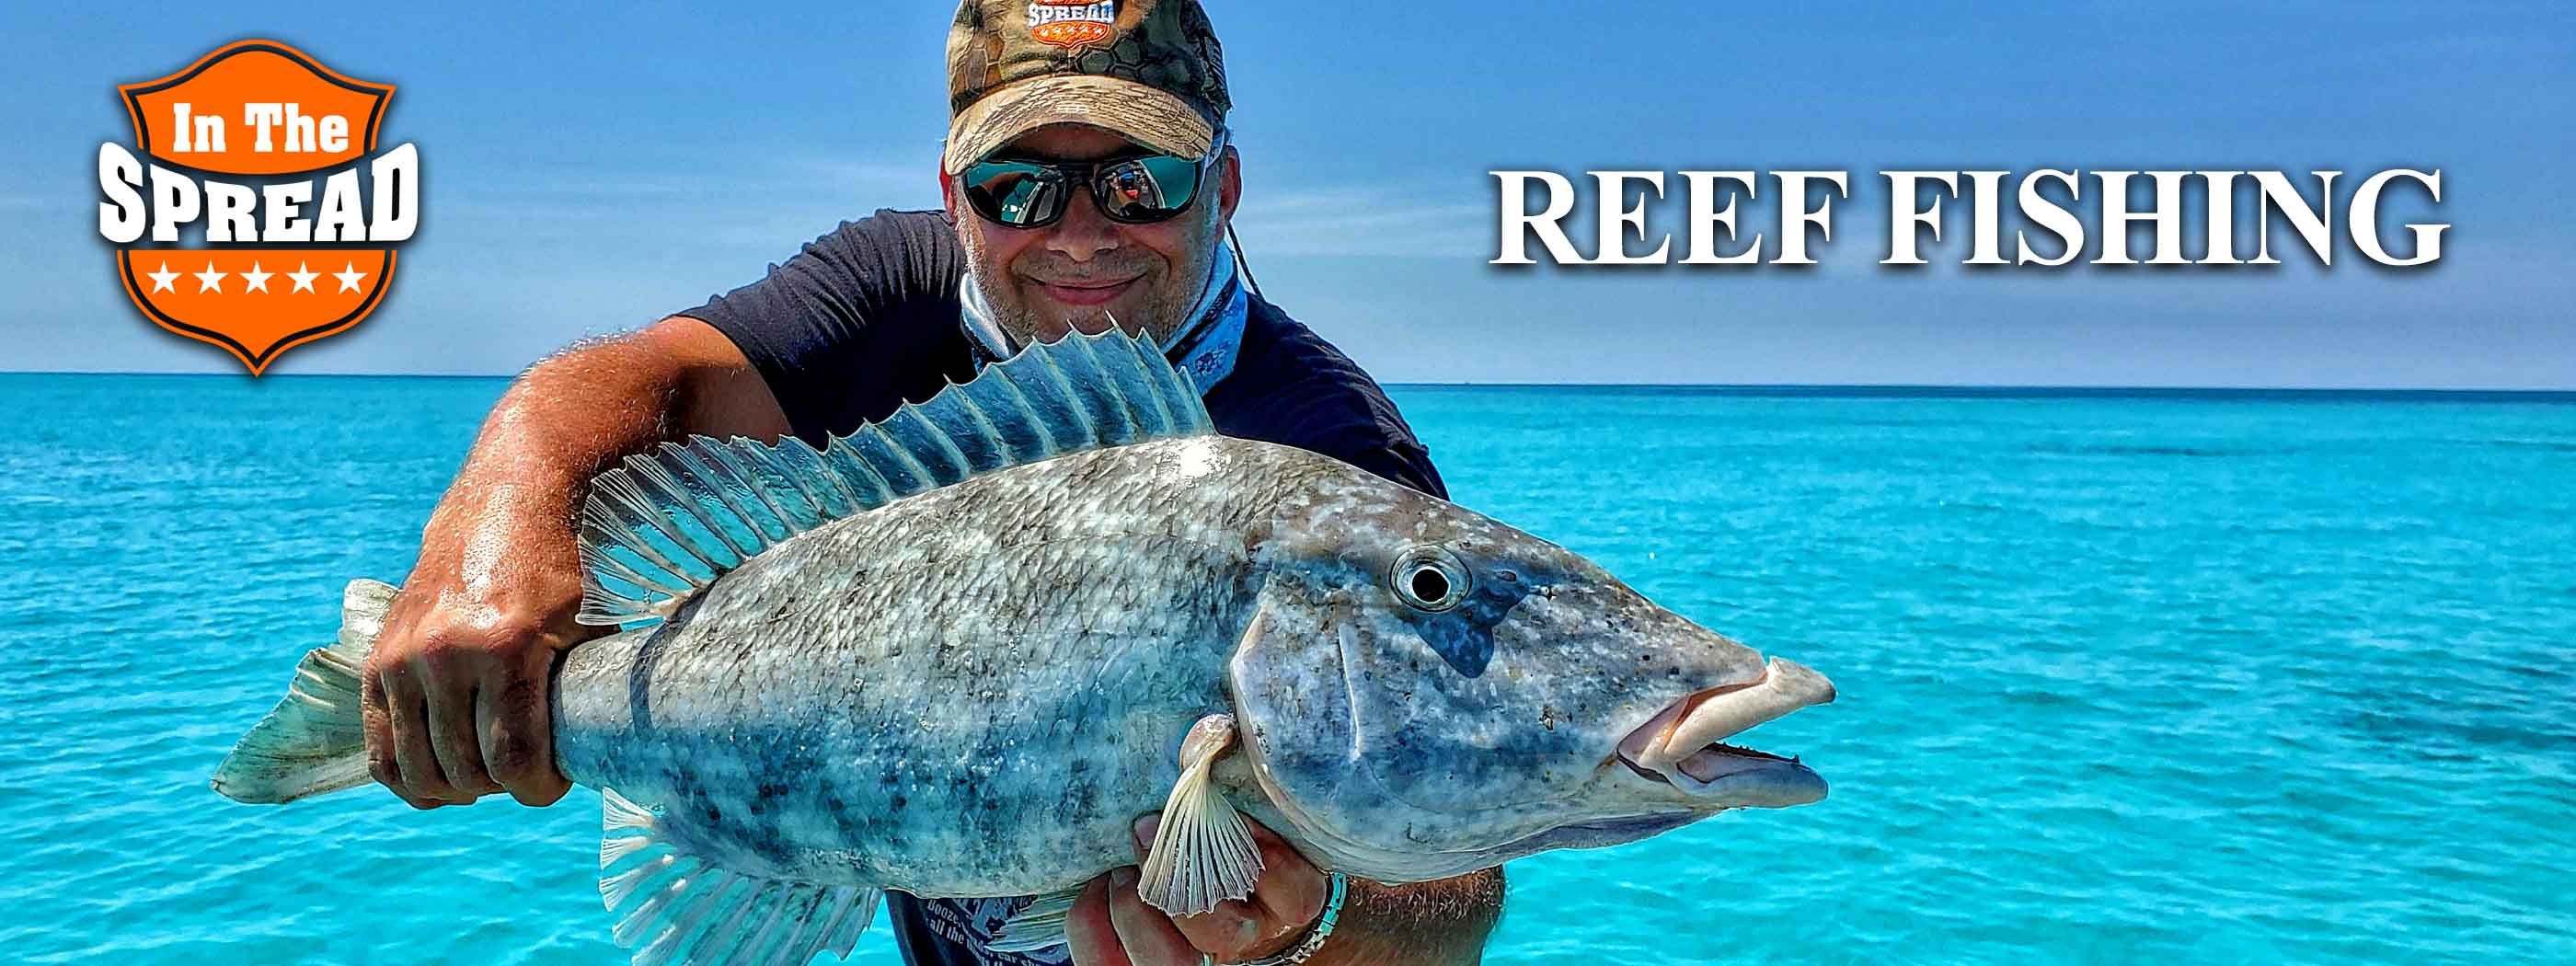 reef fishing videos in the spread seth horne